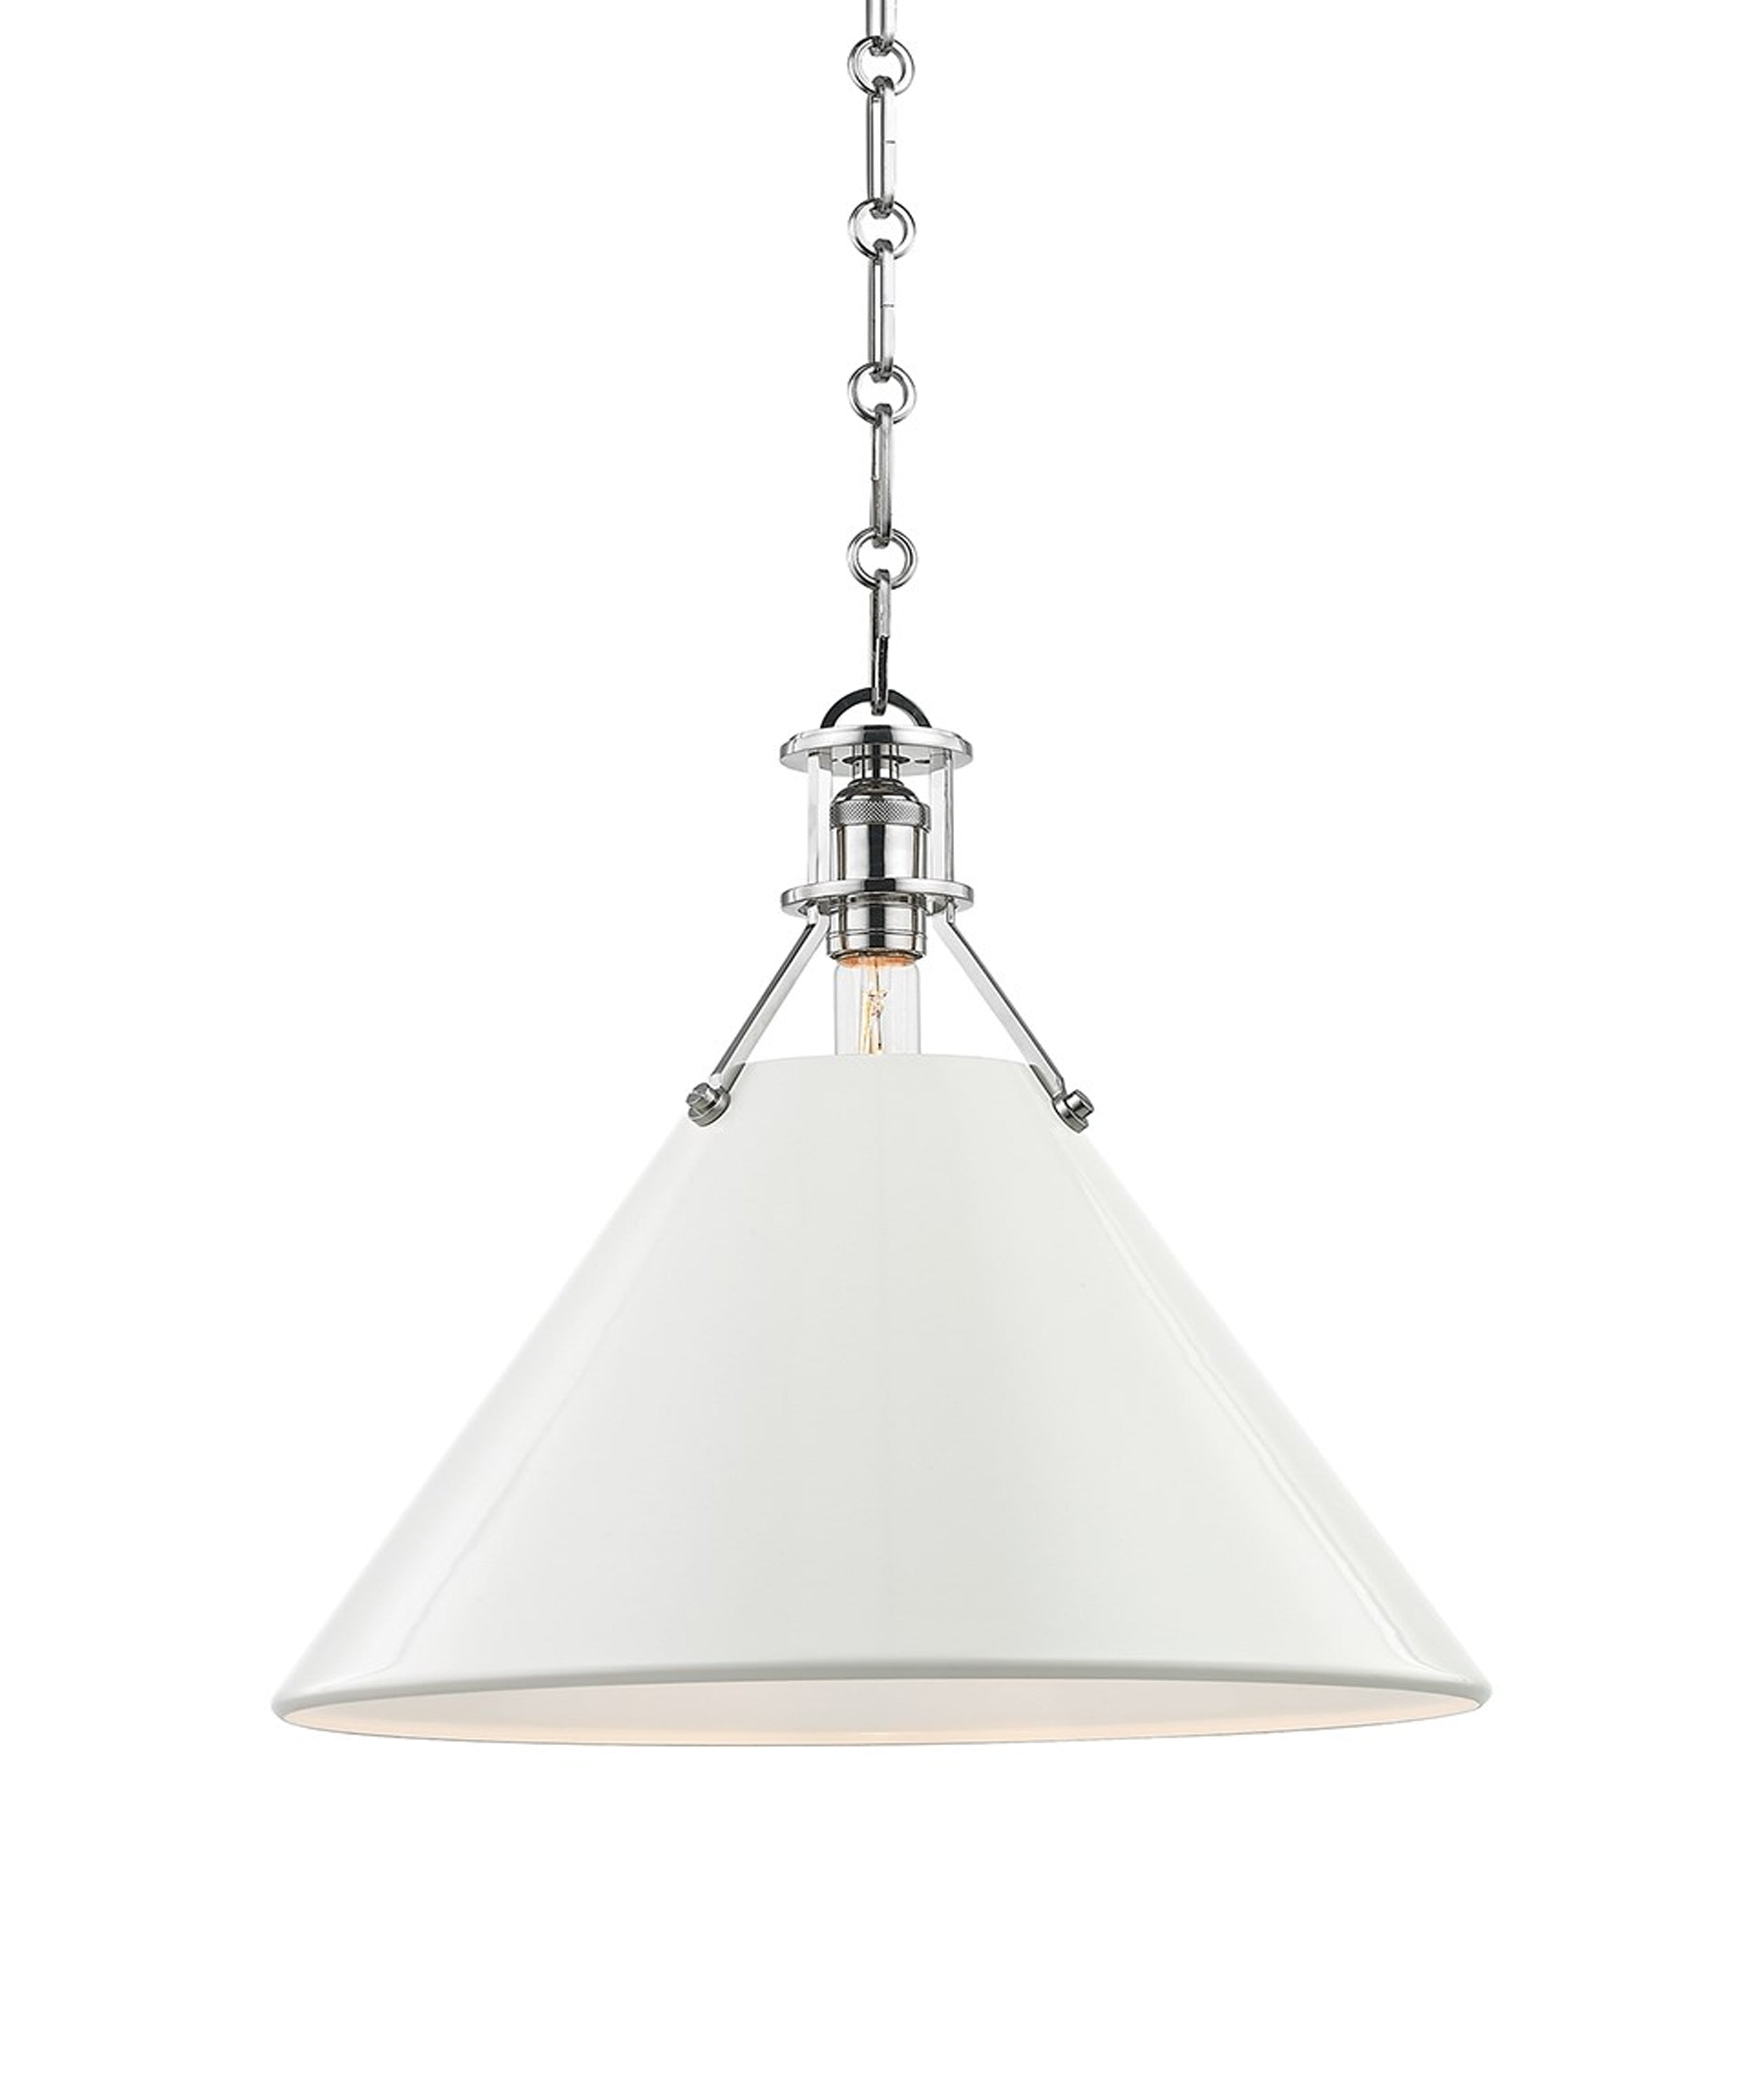 Large Painted No. 2 Pendant, Polished Nickel with White Shade